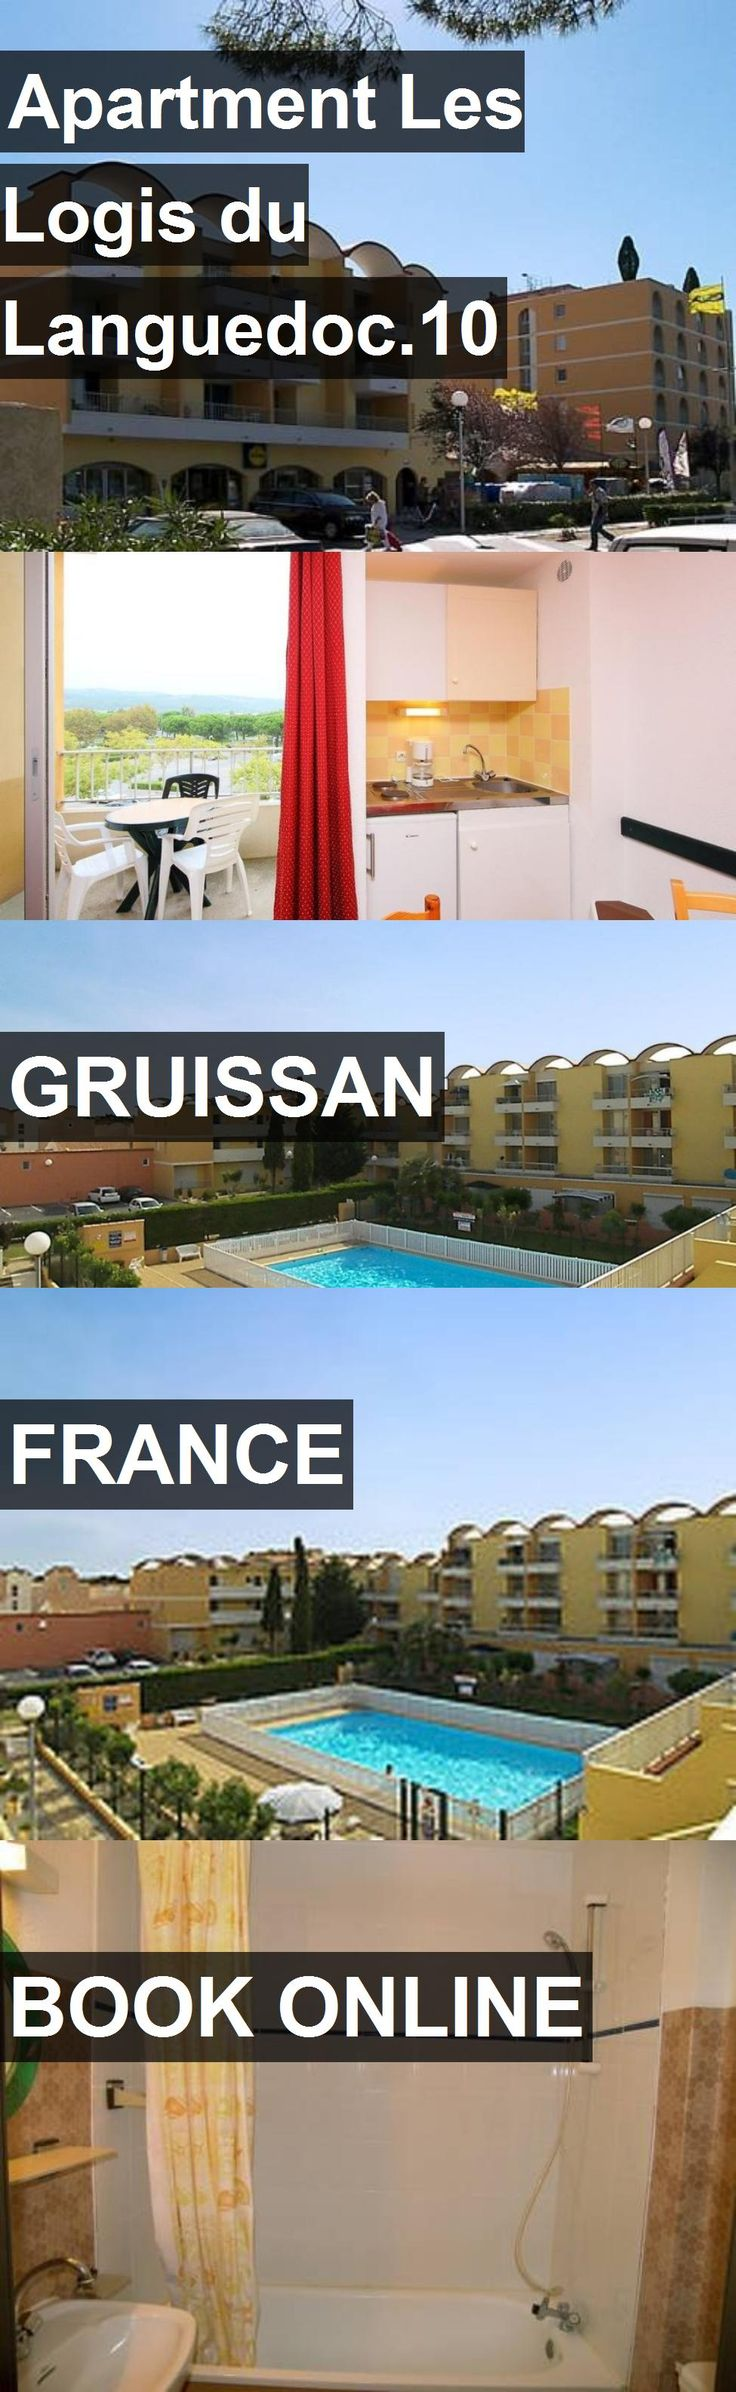 Hotel Apartment Les Logis du Languedoc.10 in Gruissan, France. For more information, photos, reviews and best prices please follow the link. #France #Gruissan #ApartmentLesLogisduLanguedoc.10 #hotel #travel #vacation